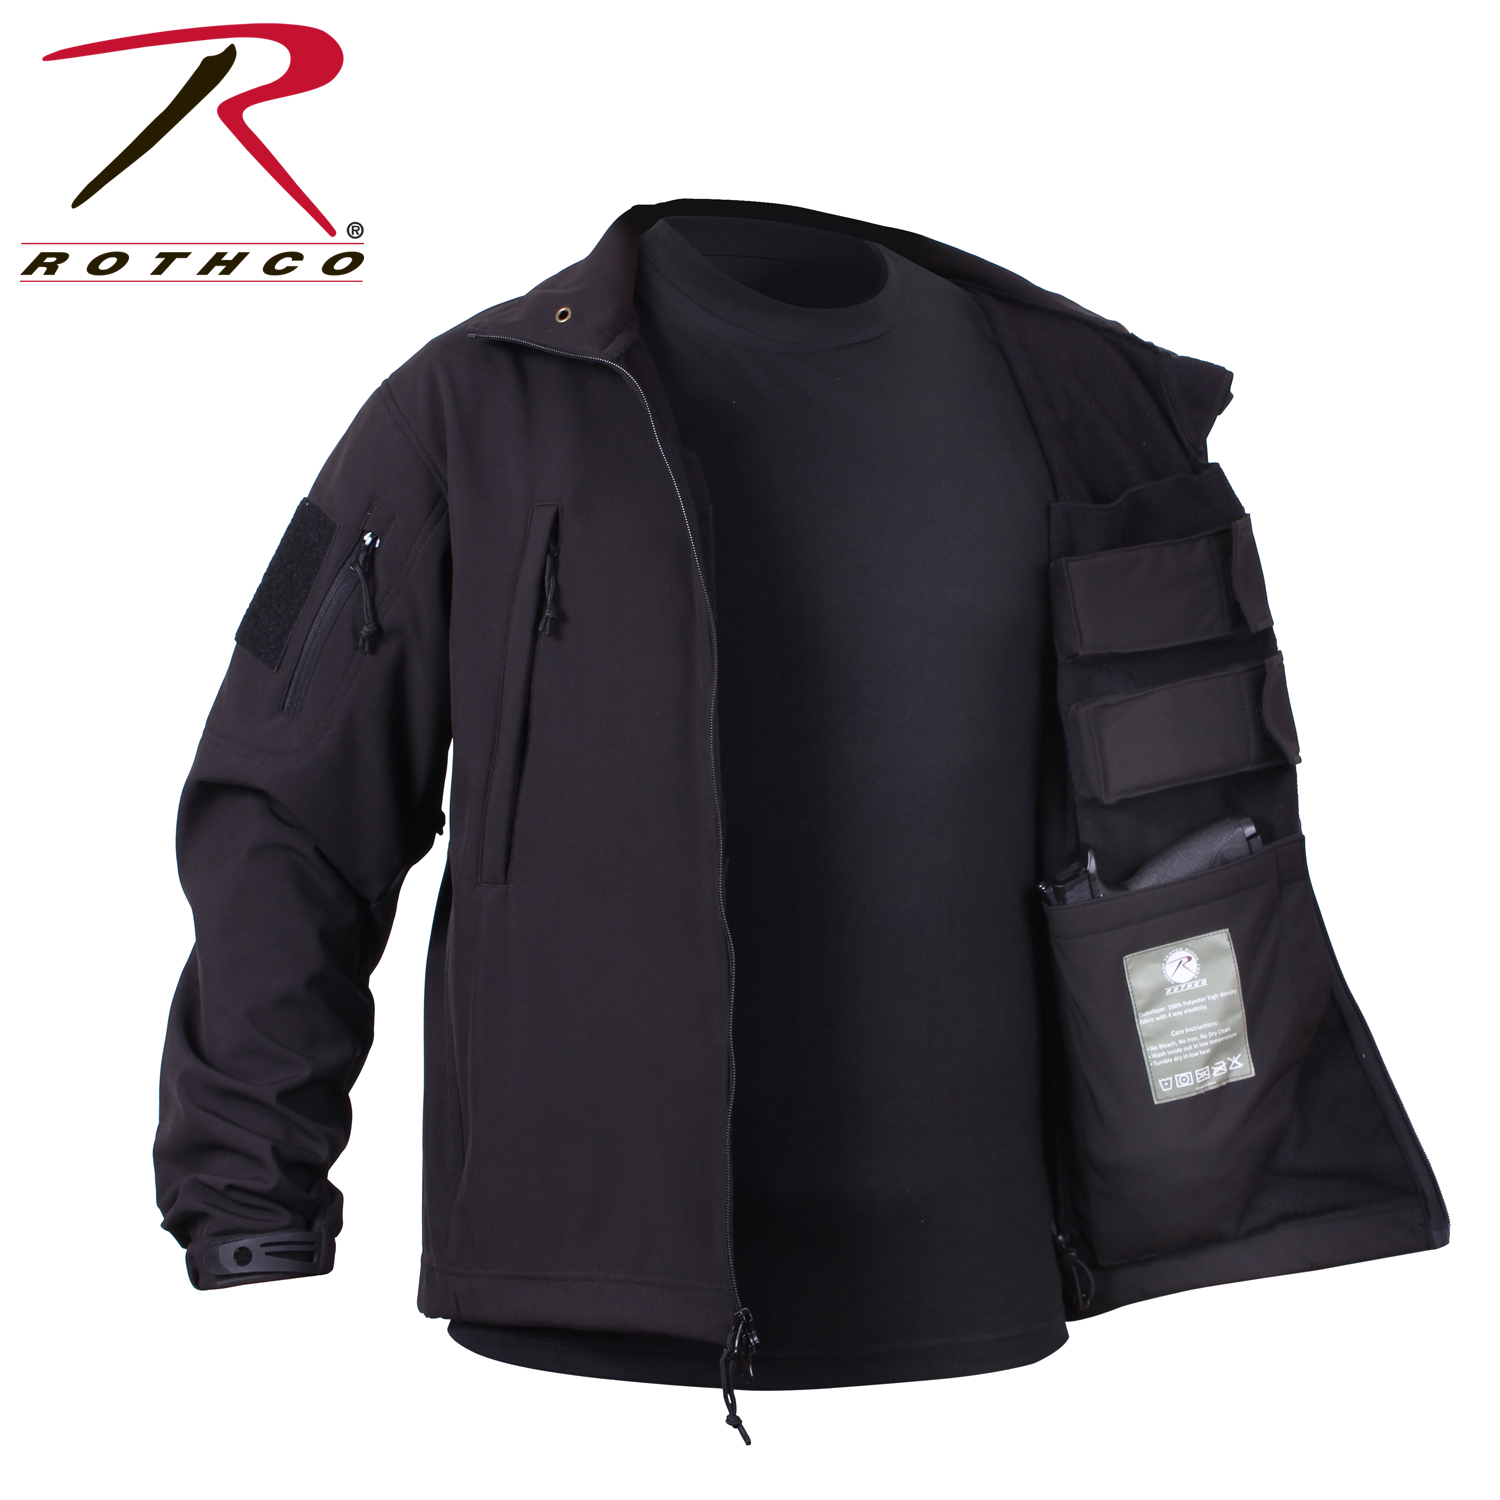 rothco 55385 concealed carry soft shell jacket black ebay